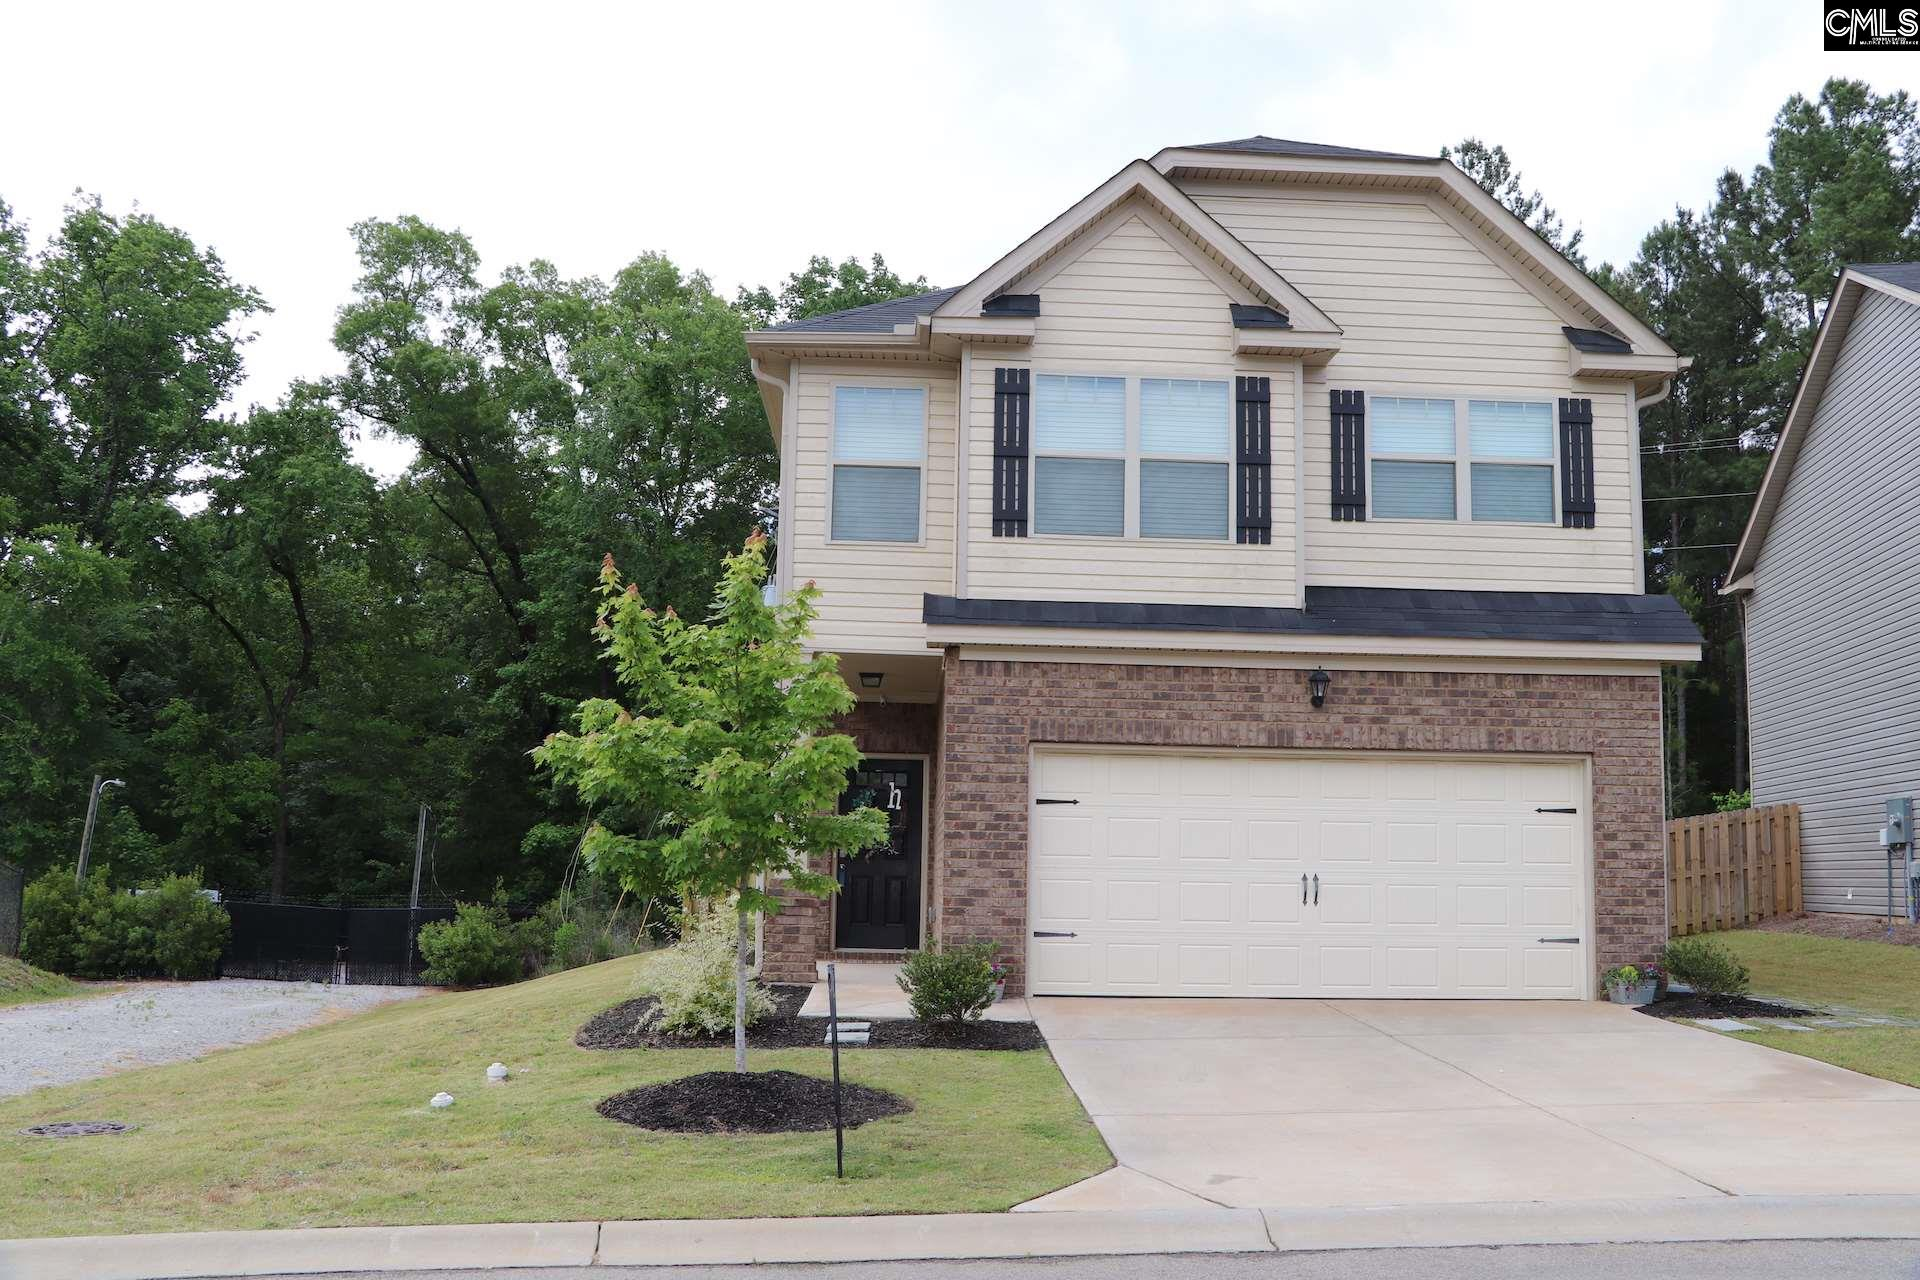 248 Bickley View Chapin, SC 29036